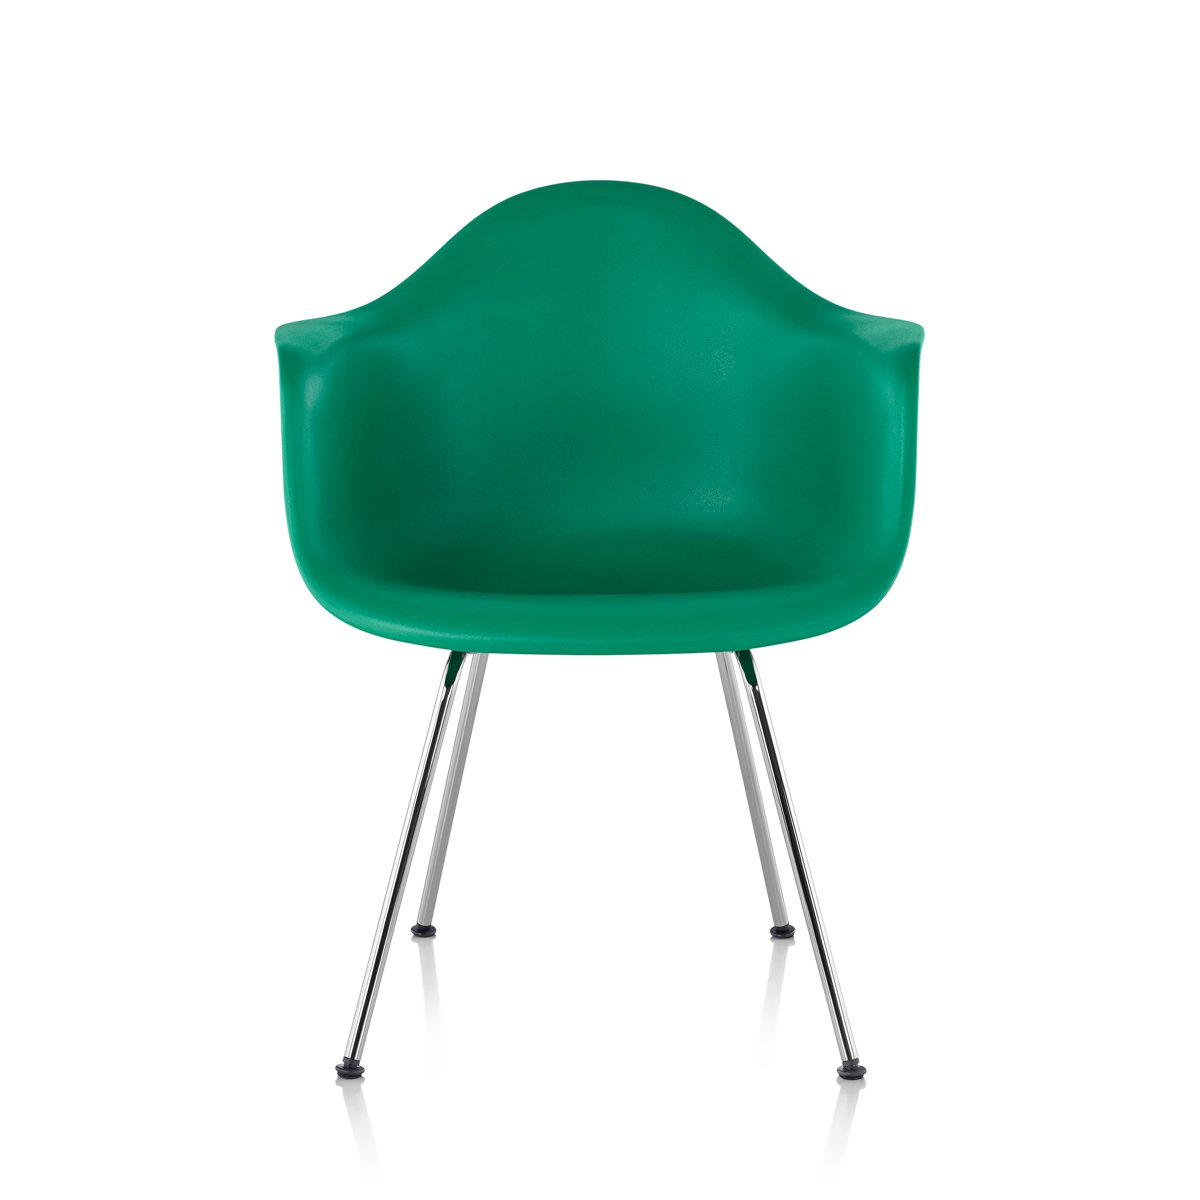 eames molded plastic chair industrial herman miller eames molded plastic armchair 4leg base by charles ray